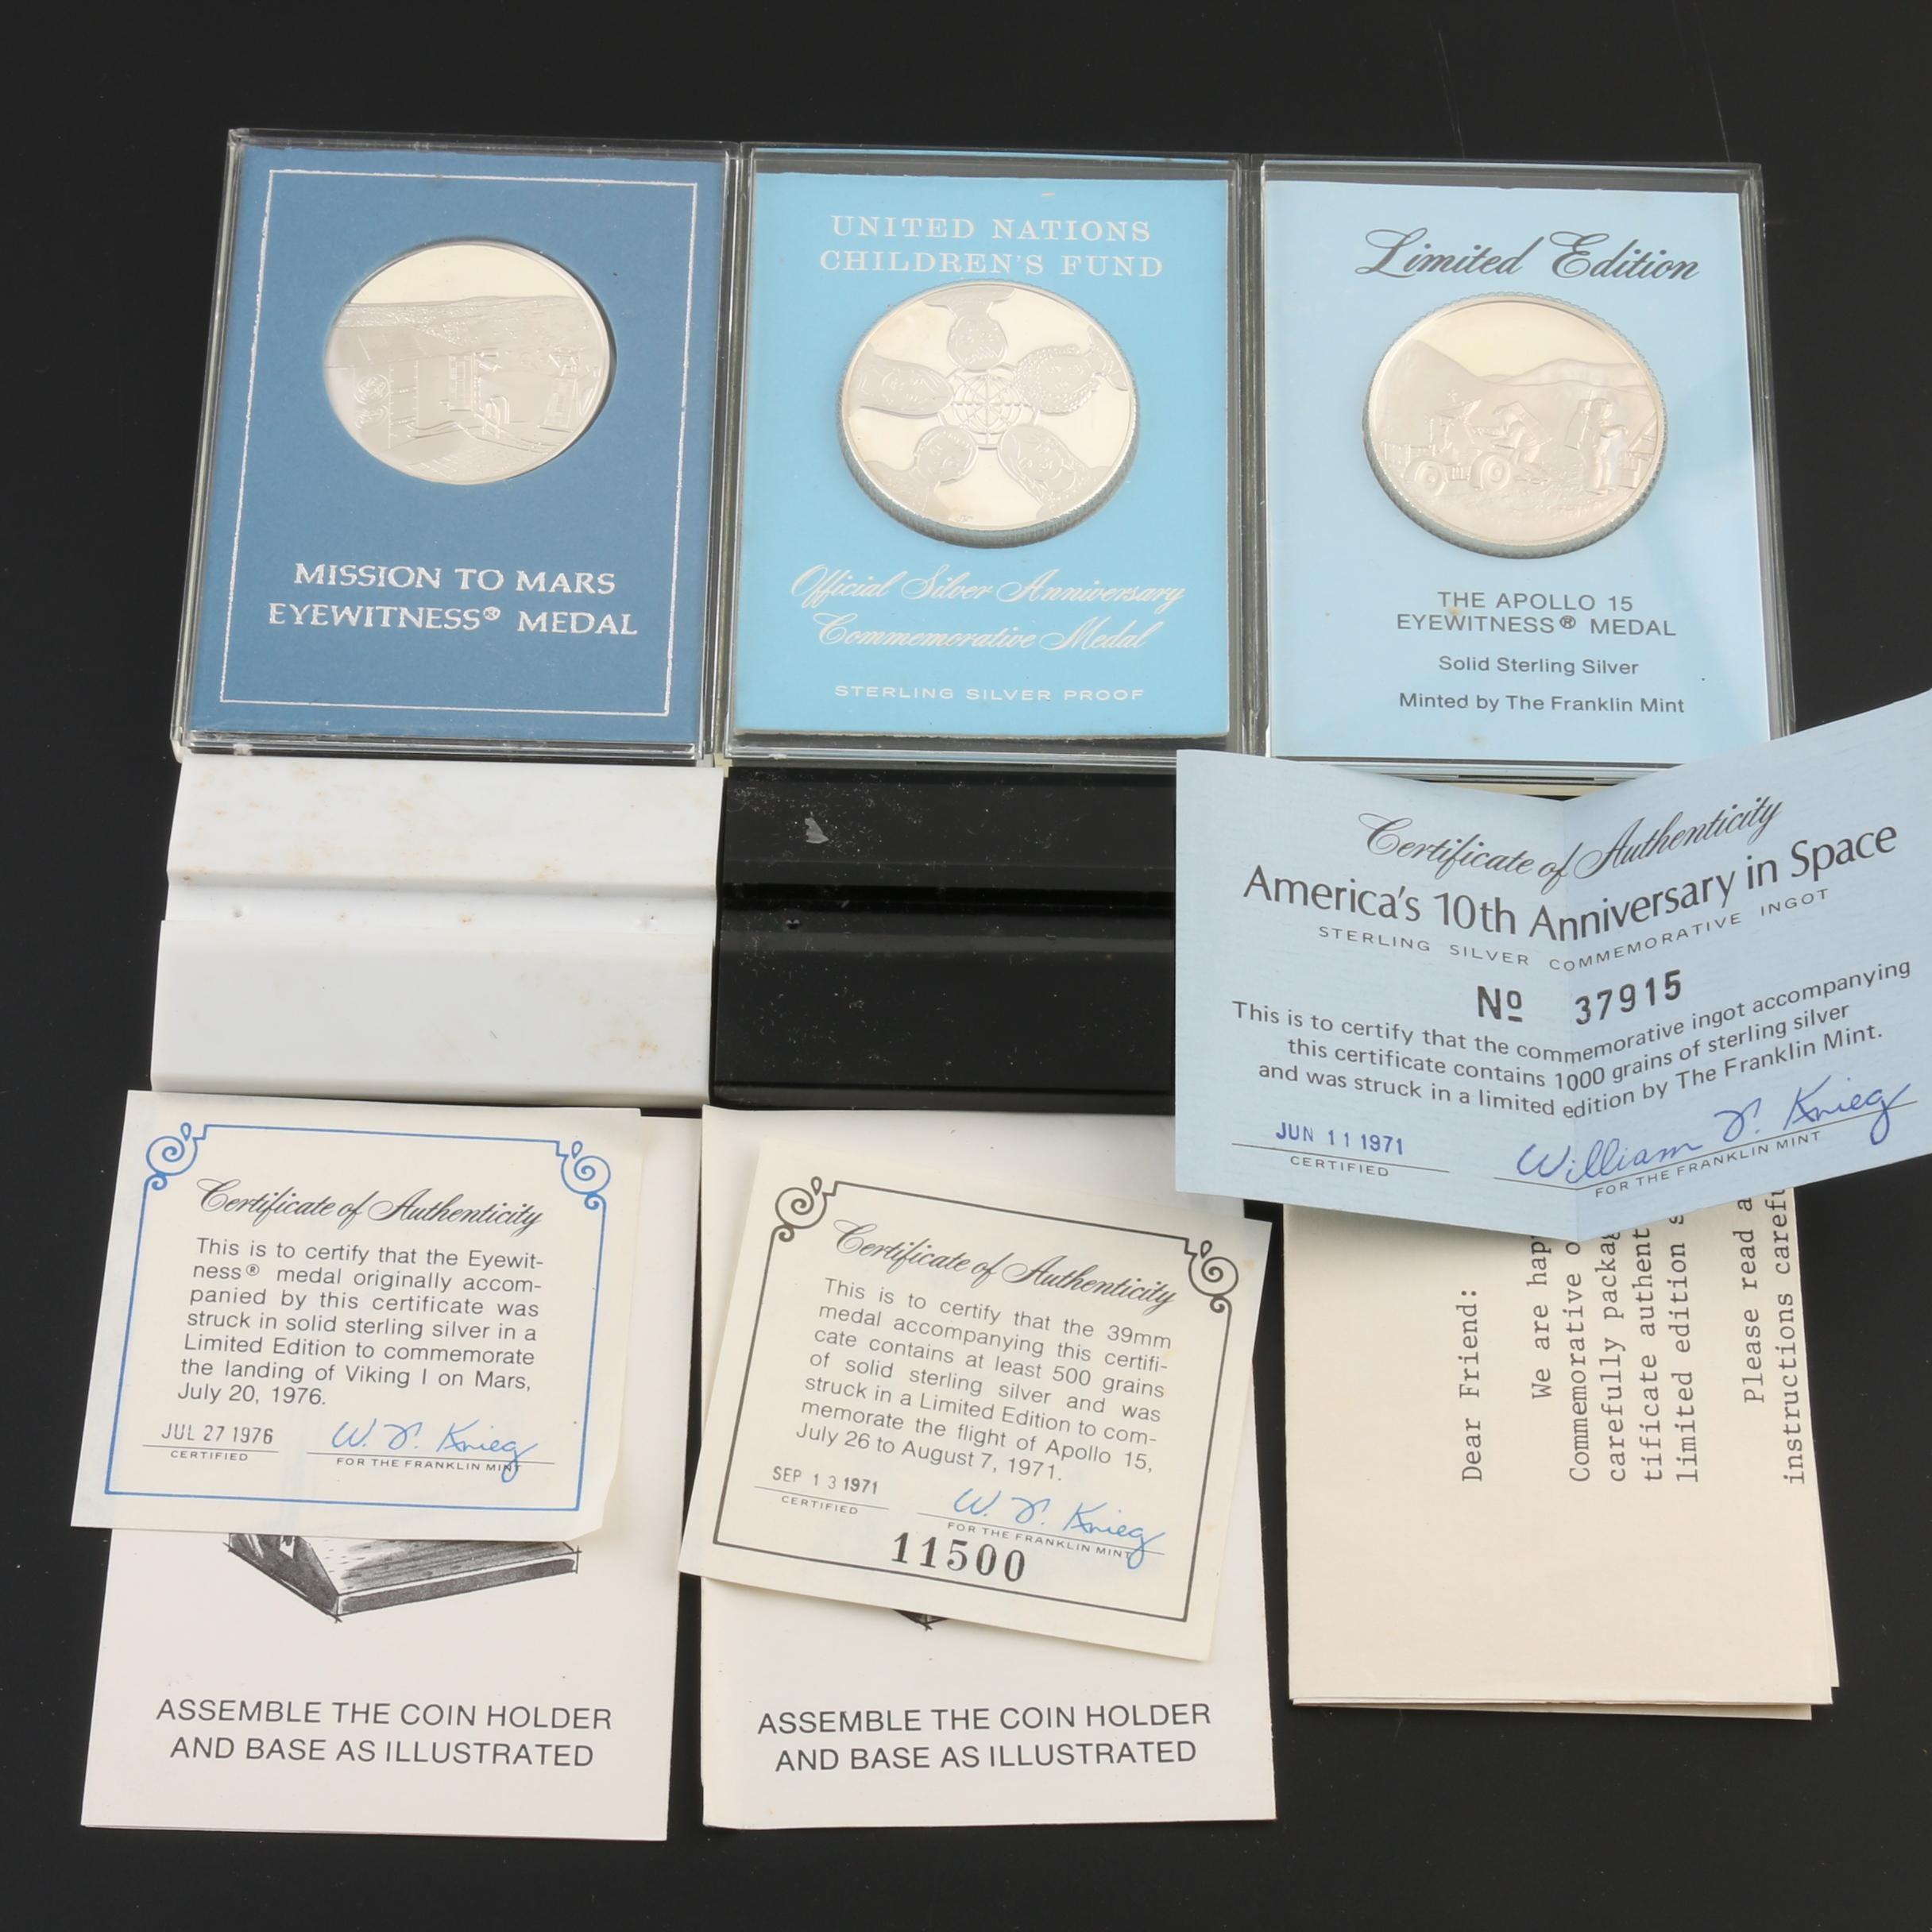 Three Commemorative Franklin Mint Silver Proof Medals